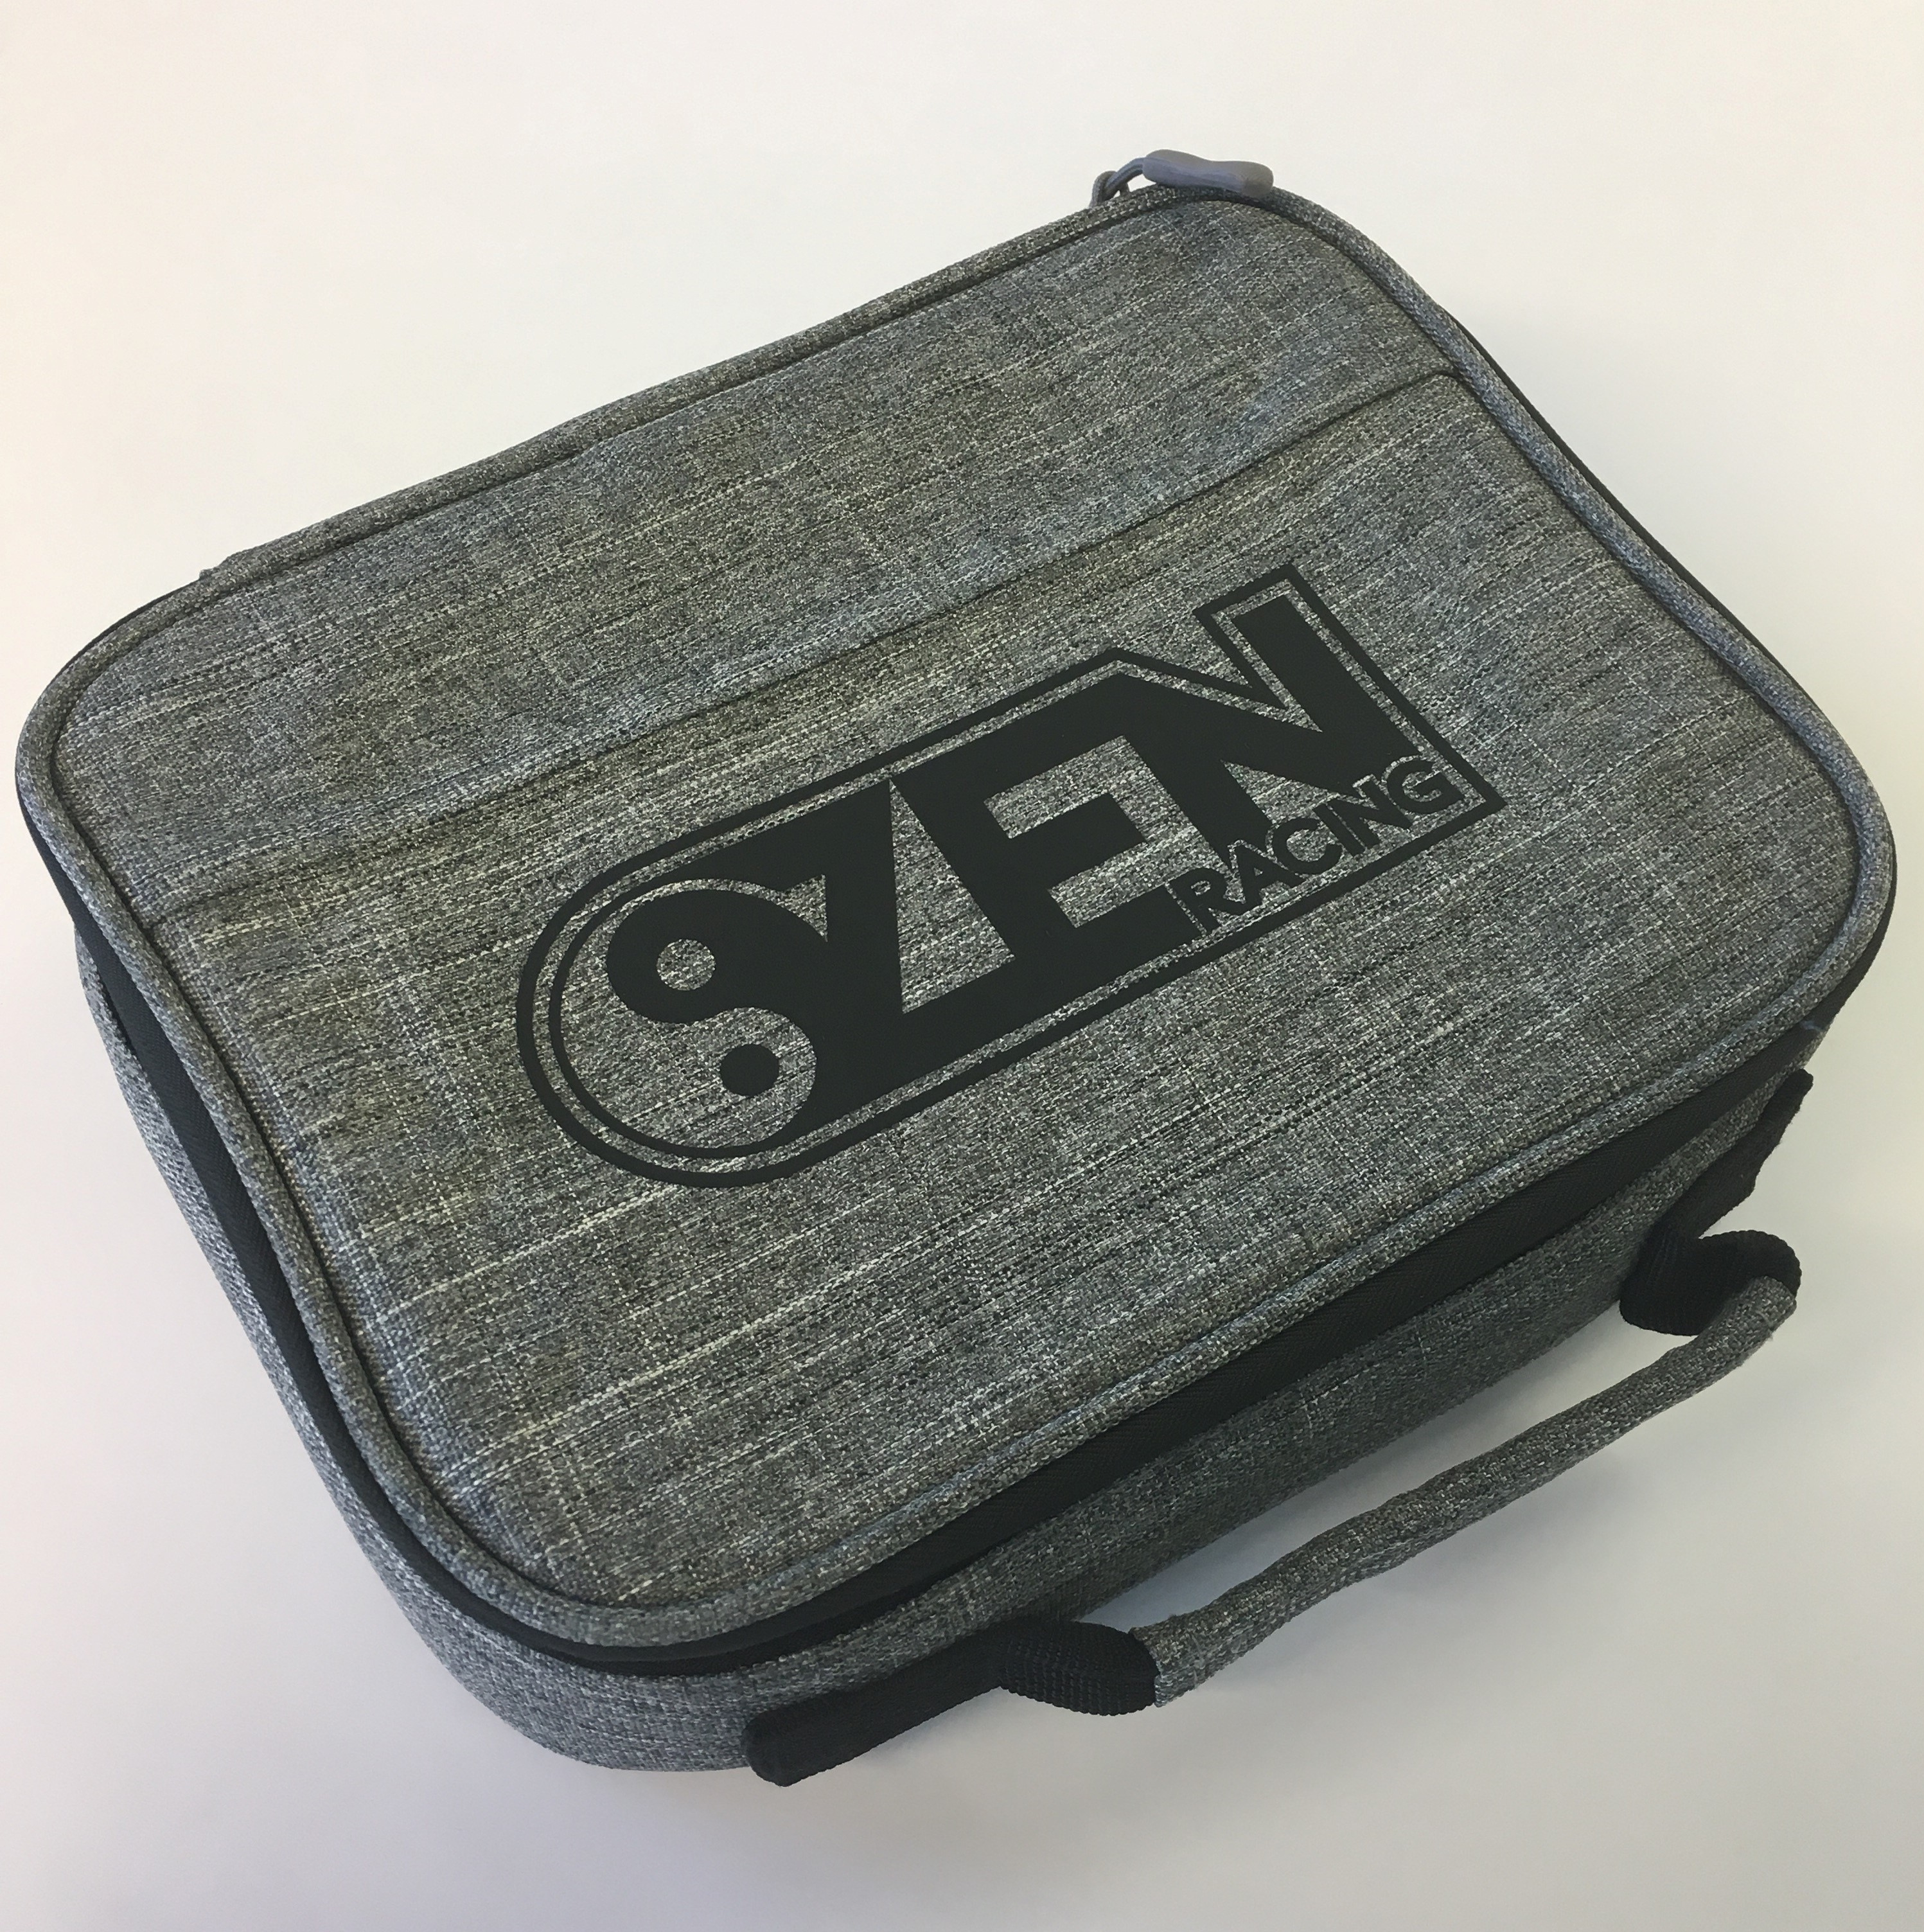 Zen-Racing Tool Bag